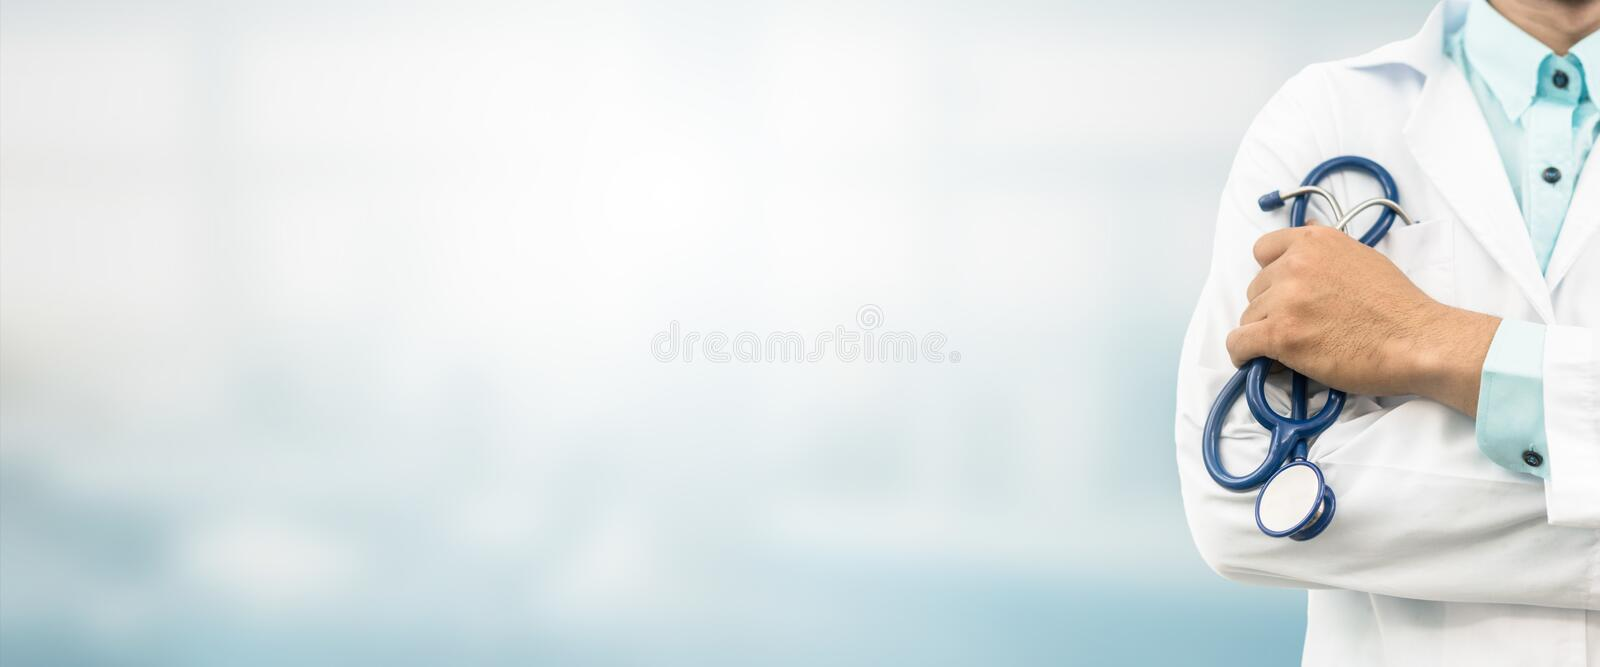 Doctor in hospital background with copy space. Healthcare and medical concept stock photos